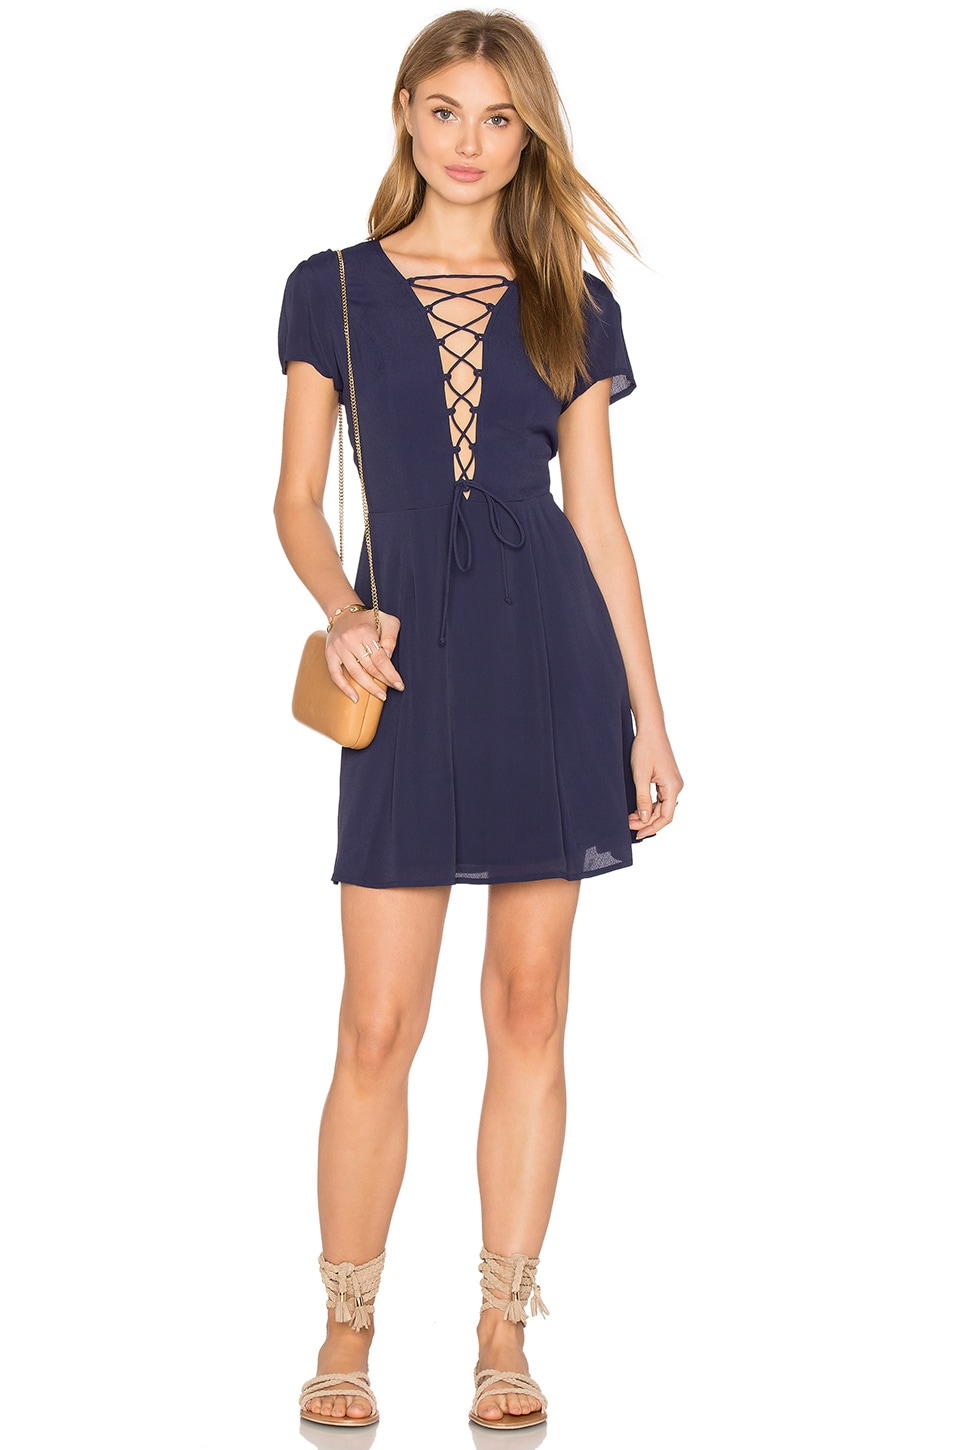 Privacy Please Phillips Dress in Navy